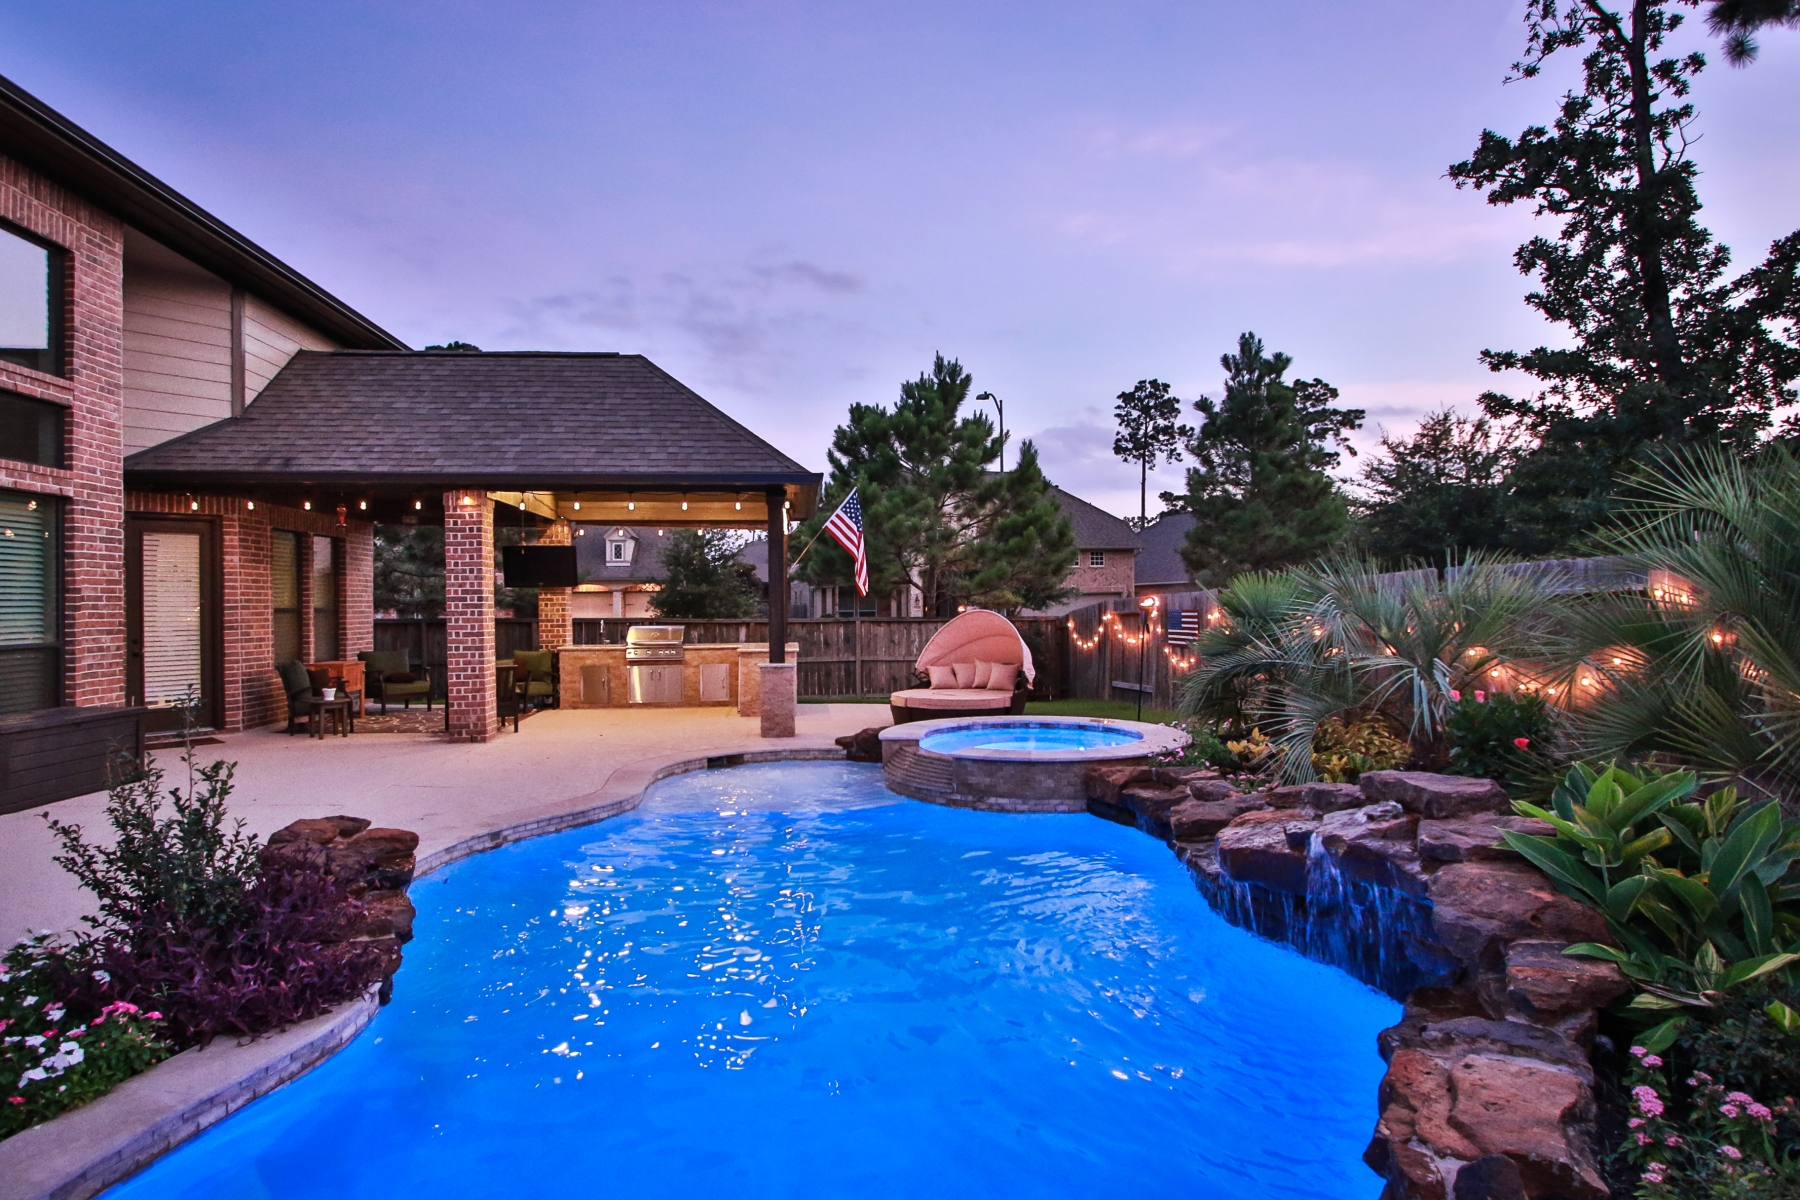 Pool View of Freeform Pool, Spa, Waterfall and Covered Patio with Outdoor Kitchen